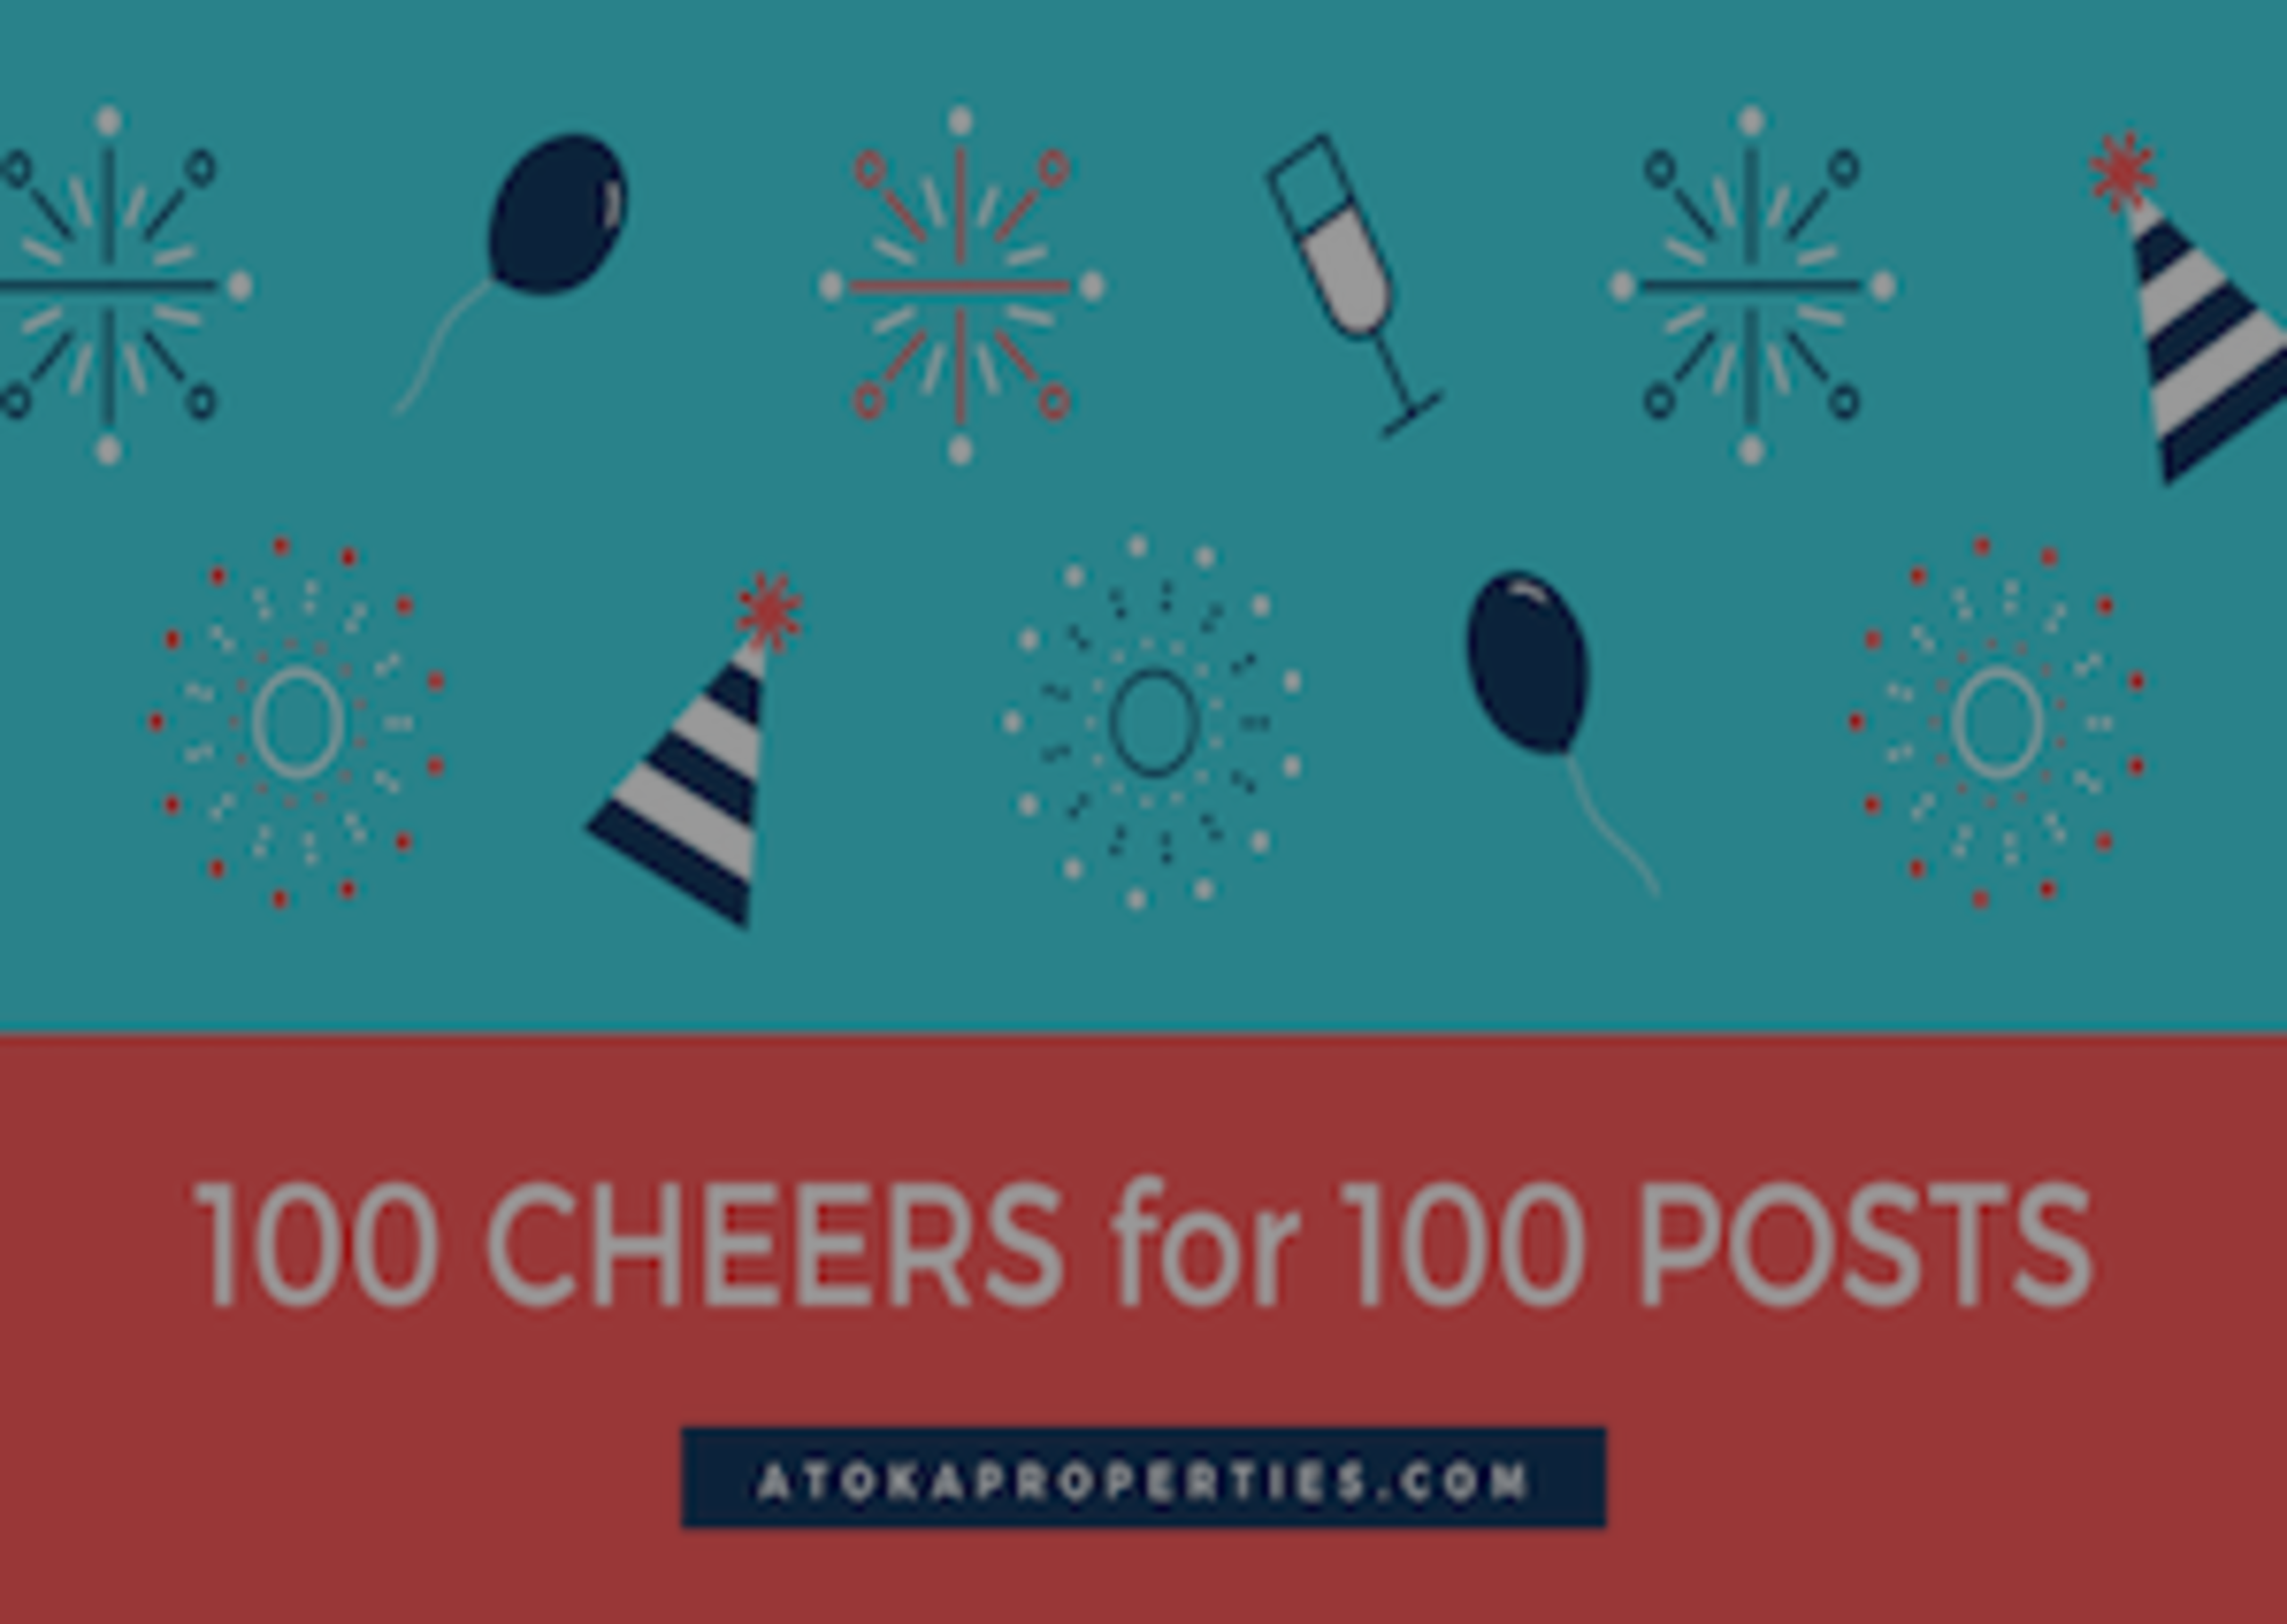 100 Cheers for MRE AP!